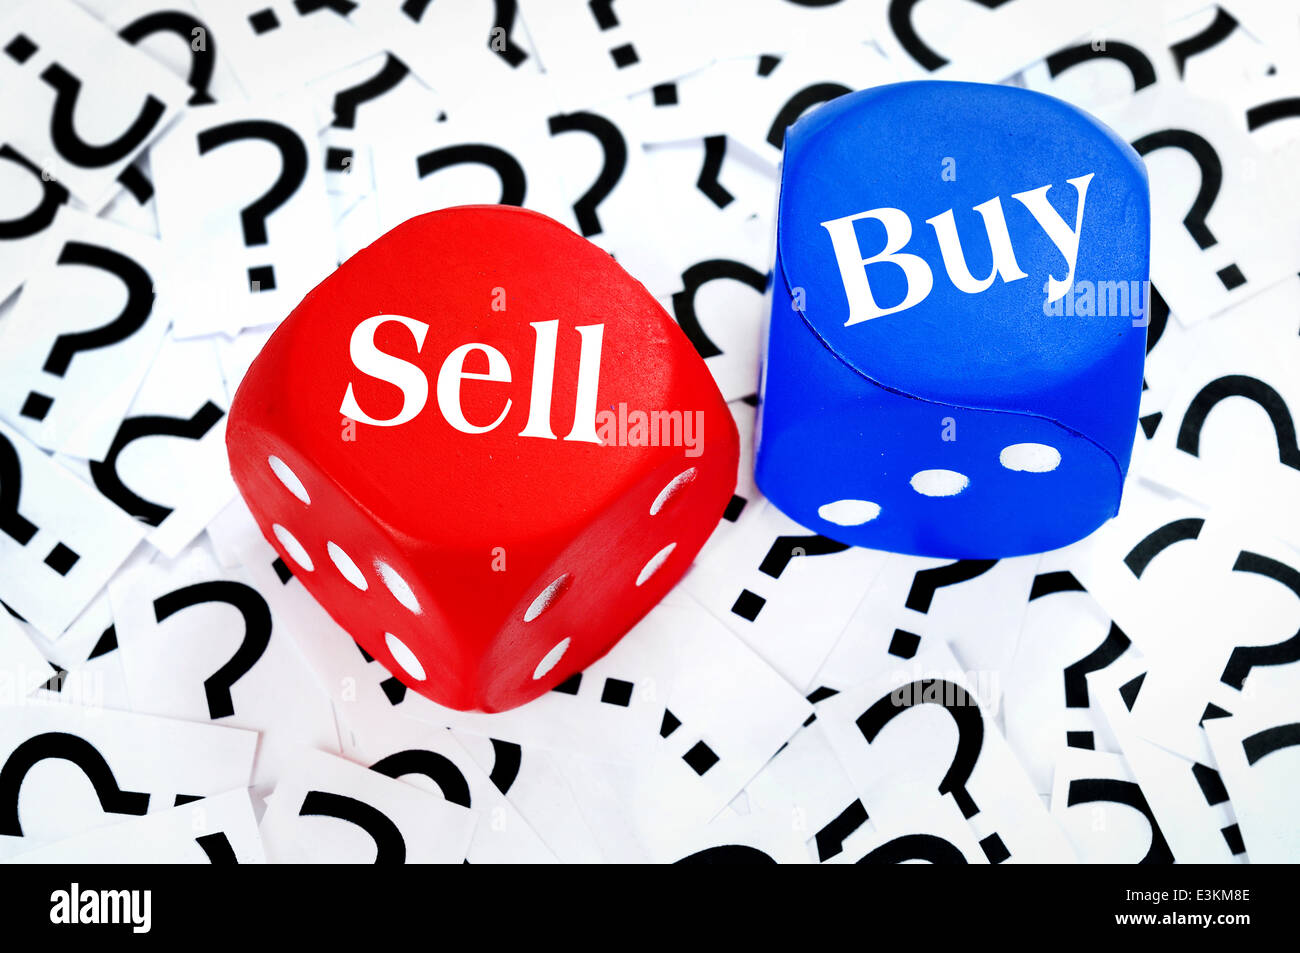 Sell or Buy word on question mark background - Stock Image